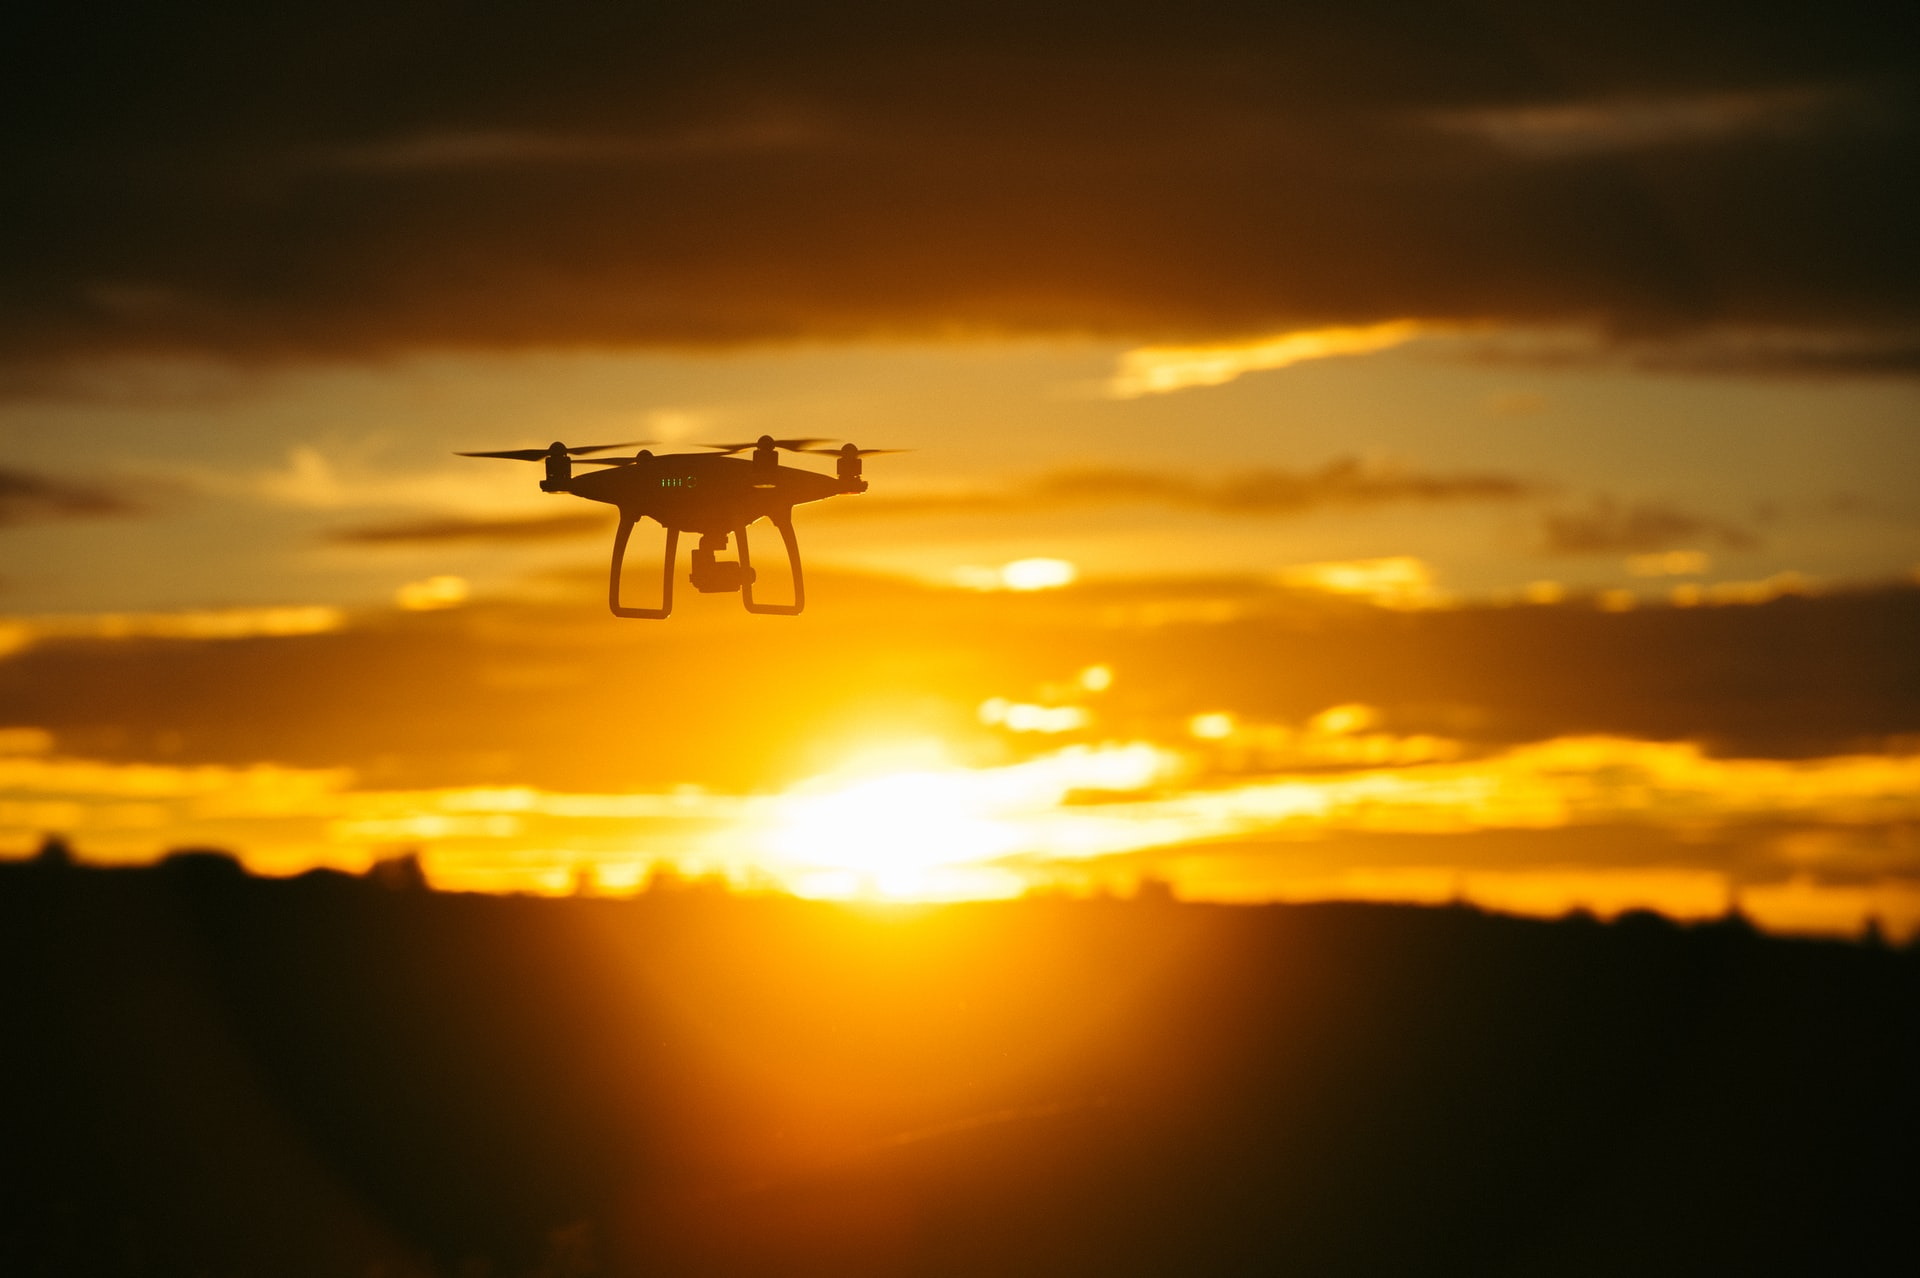 Increasing Drone Deployments Promise to Streamline Supply Chains, Non-Retail Services